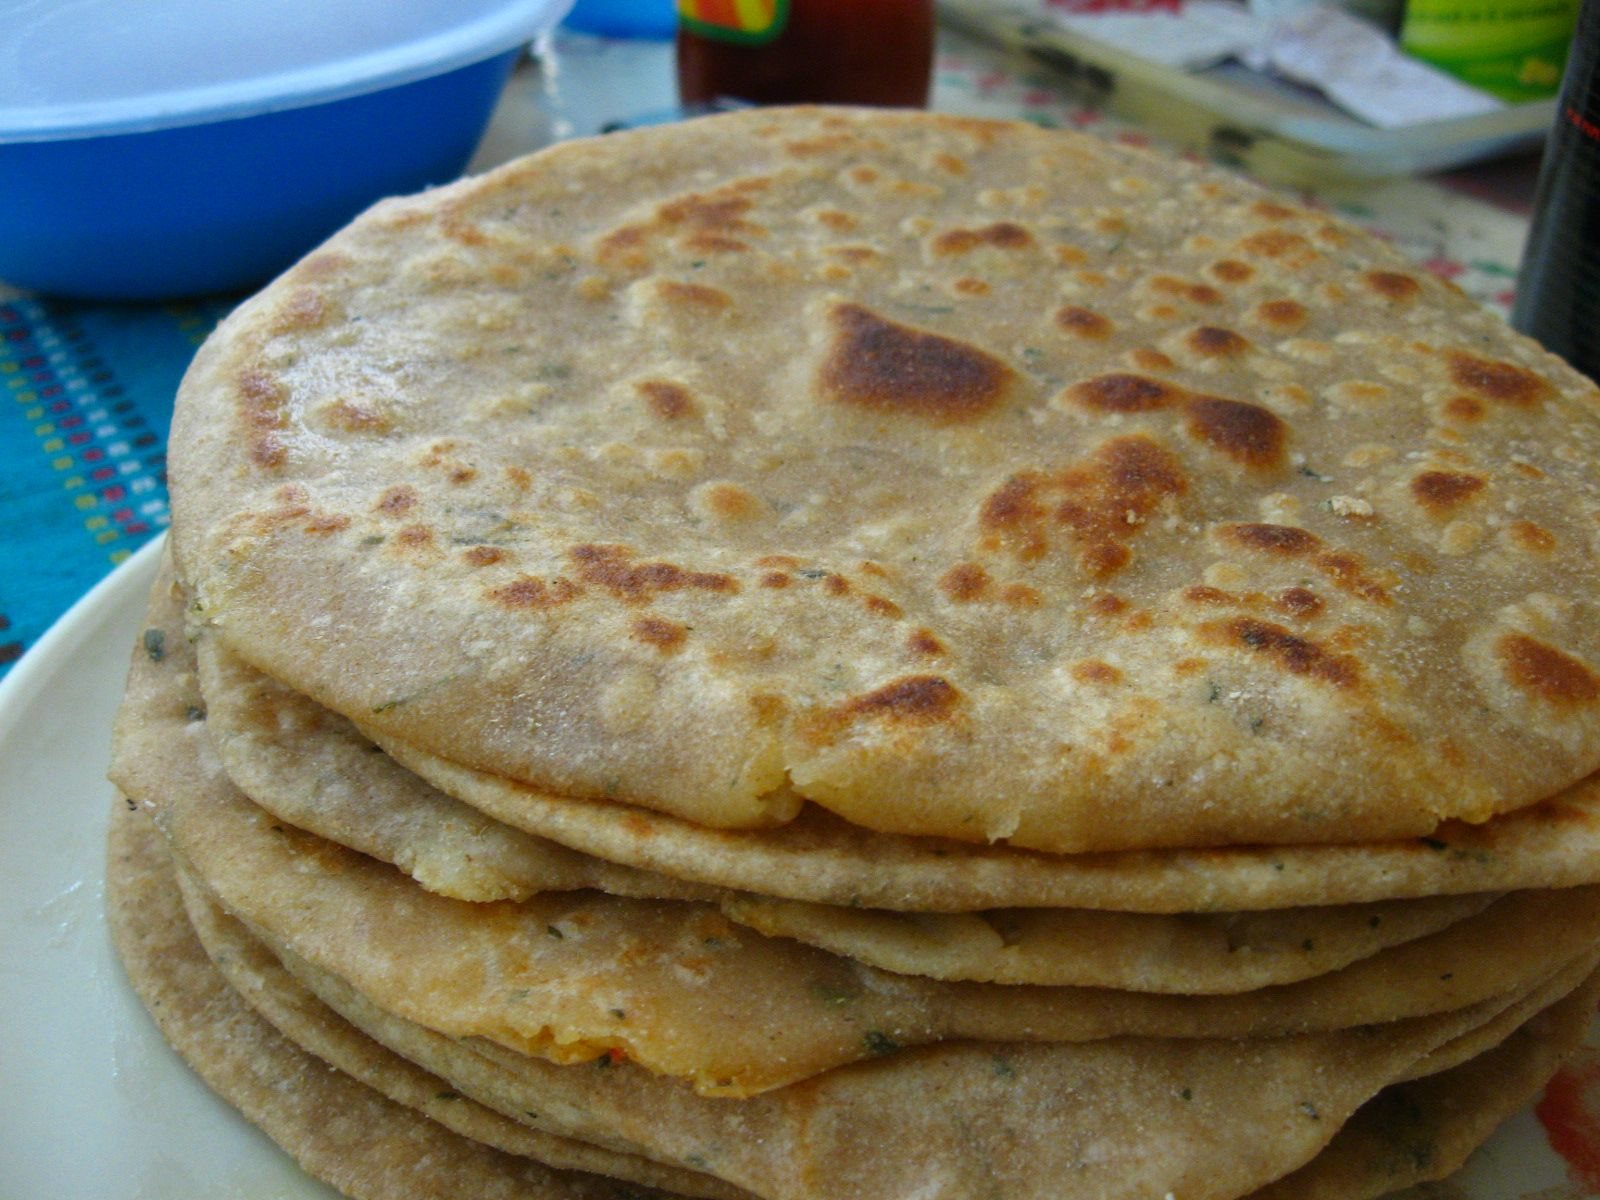 Indianfood indianrecipes paratha indianbread see paratha recipe indianfood indianrecipes paratha indianbread see paratha recipe here http forumfinder Image collections